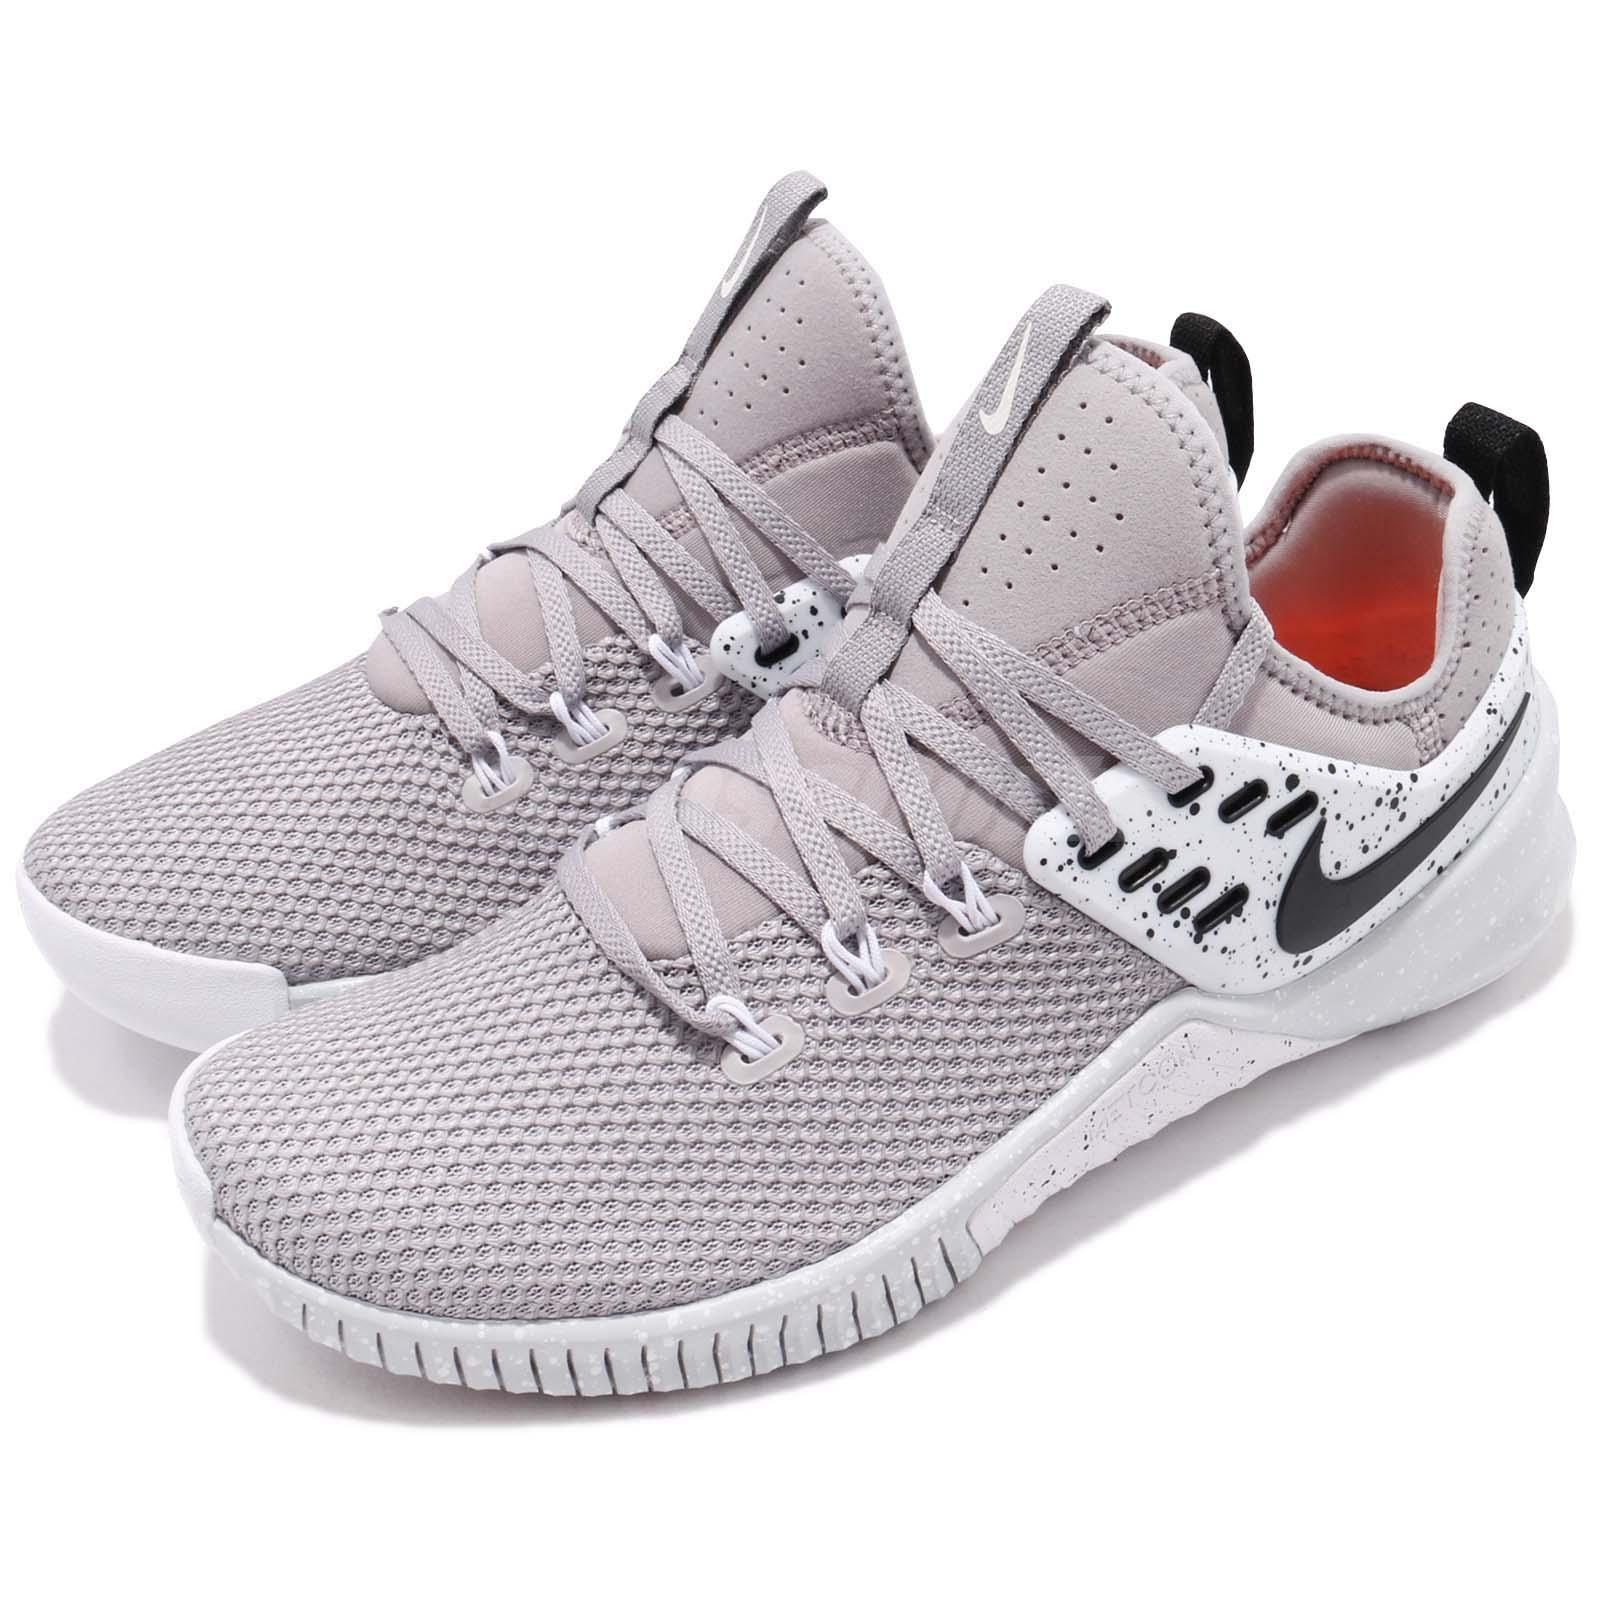 Details about Nike Free x Metcon Atmosphere Grey Men CrossFit Training  Shoes AH8141-004 3ff3ac3fd